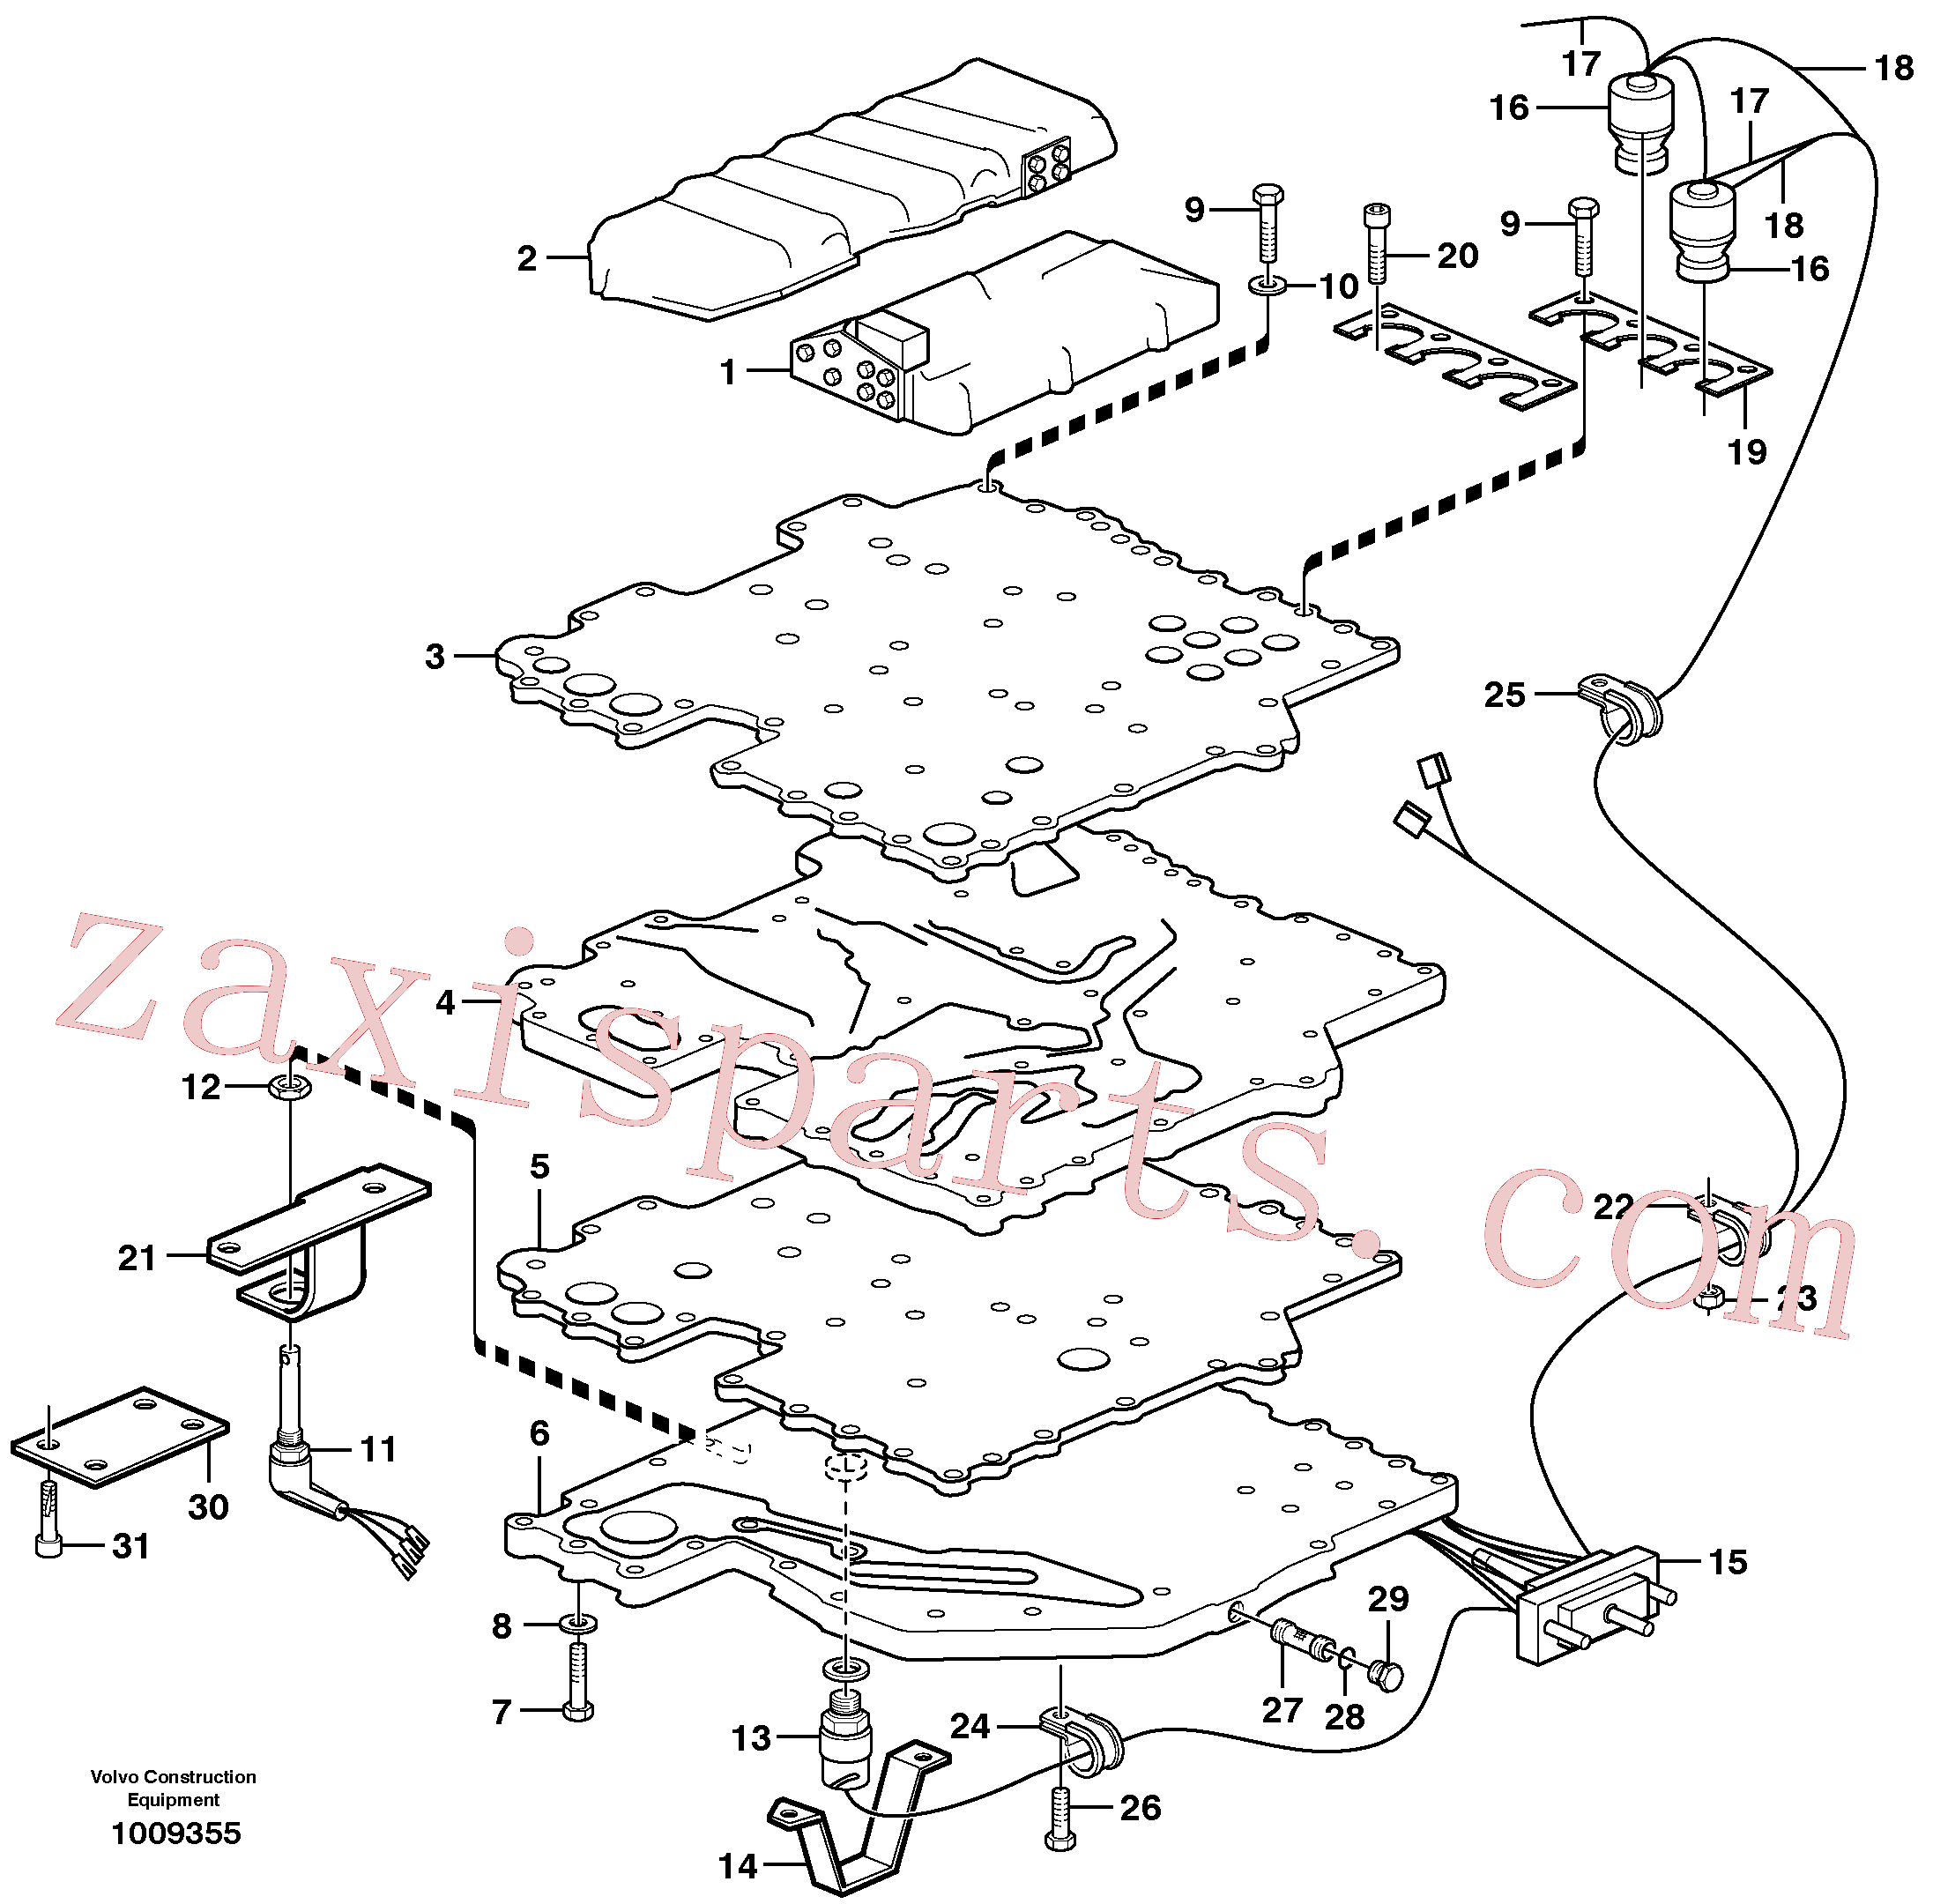 VOE11710604 for Volvo Control system(1009355 assembly)